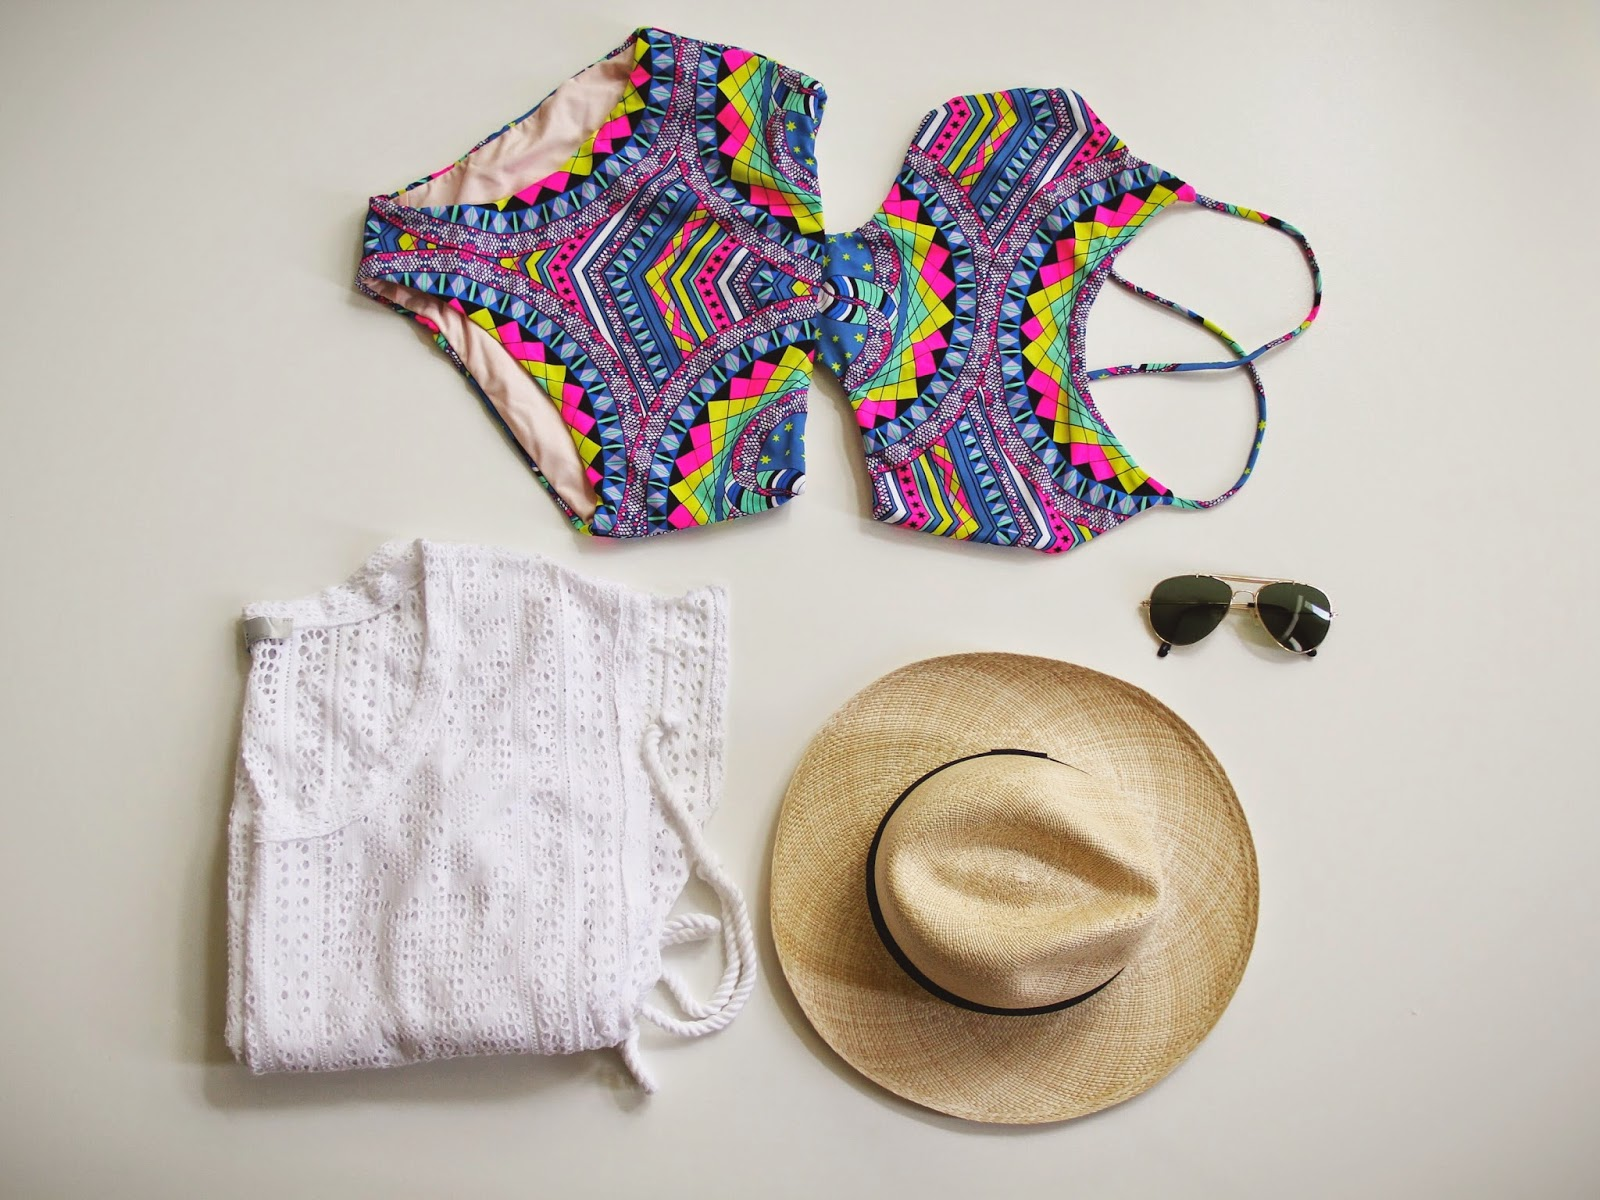 Dress cover up, cut out swimwear, hat, sunnies